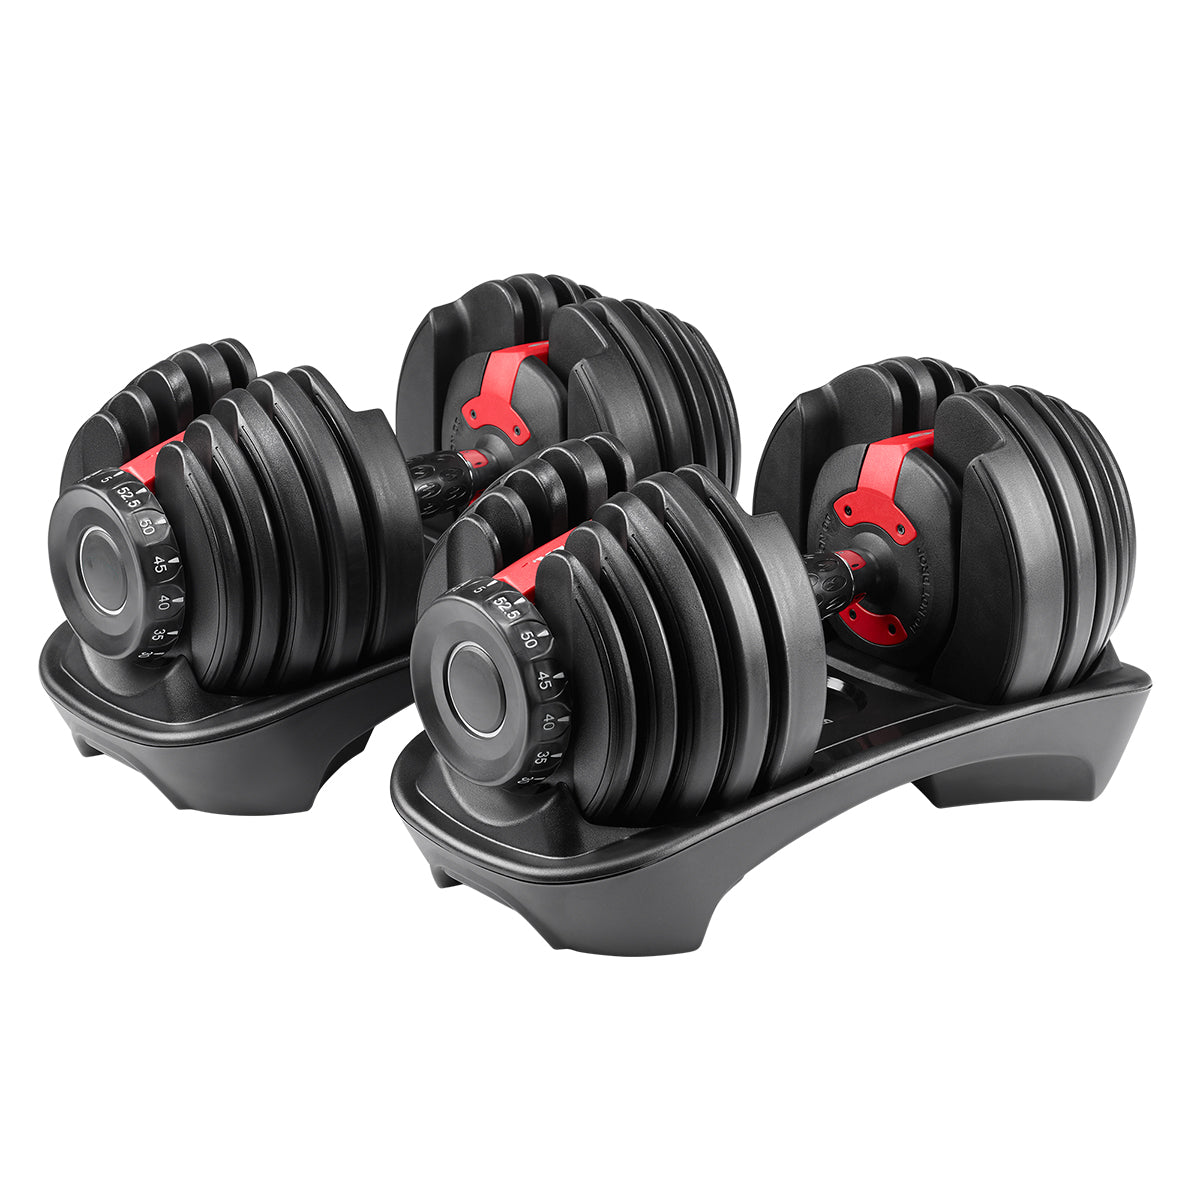 CGS 5-52.5lb Adjustable Dumbbells w/ Stand